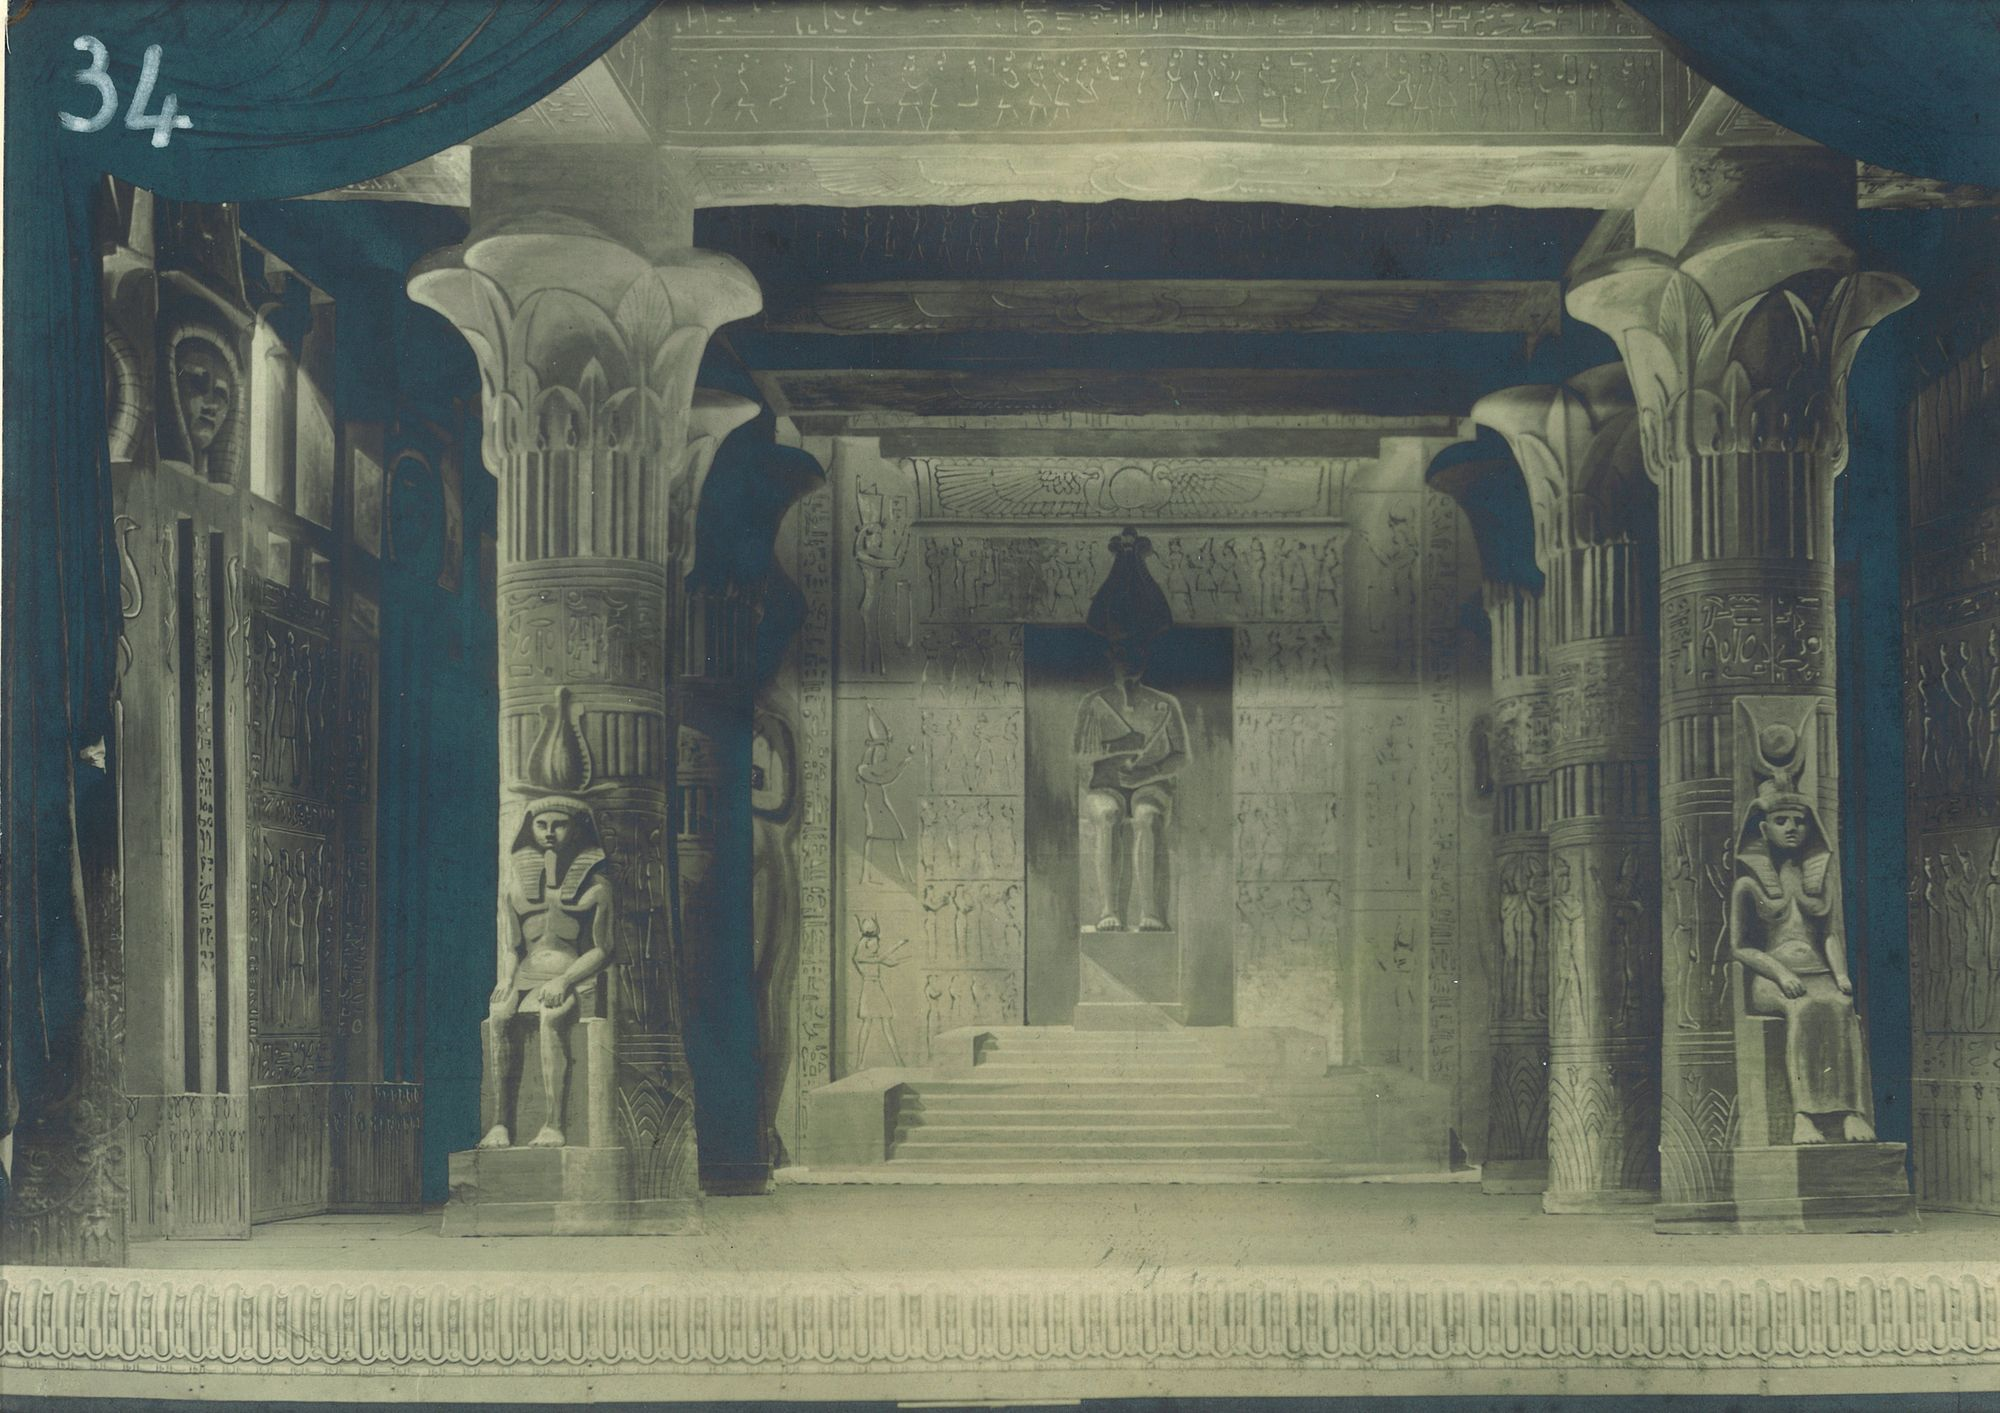 Grand temple égyptien